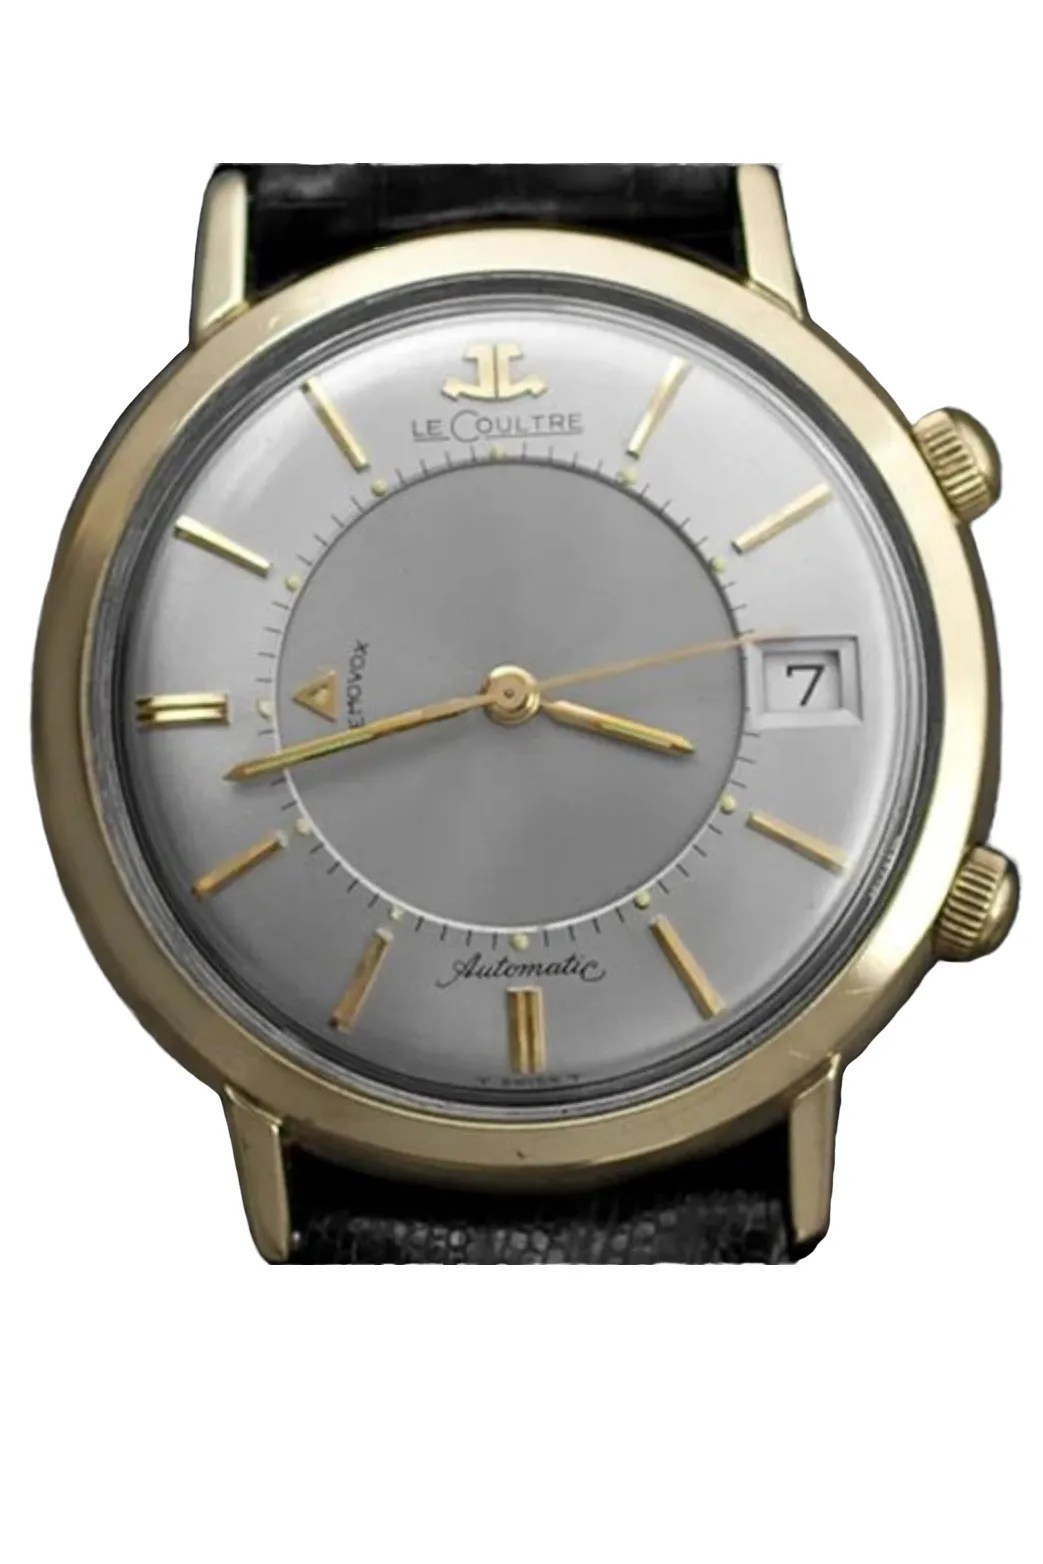 A gold and silver watch